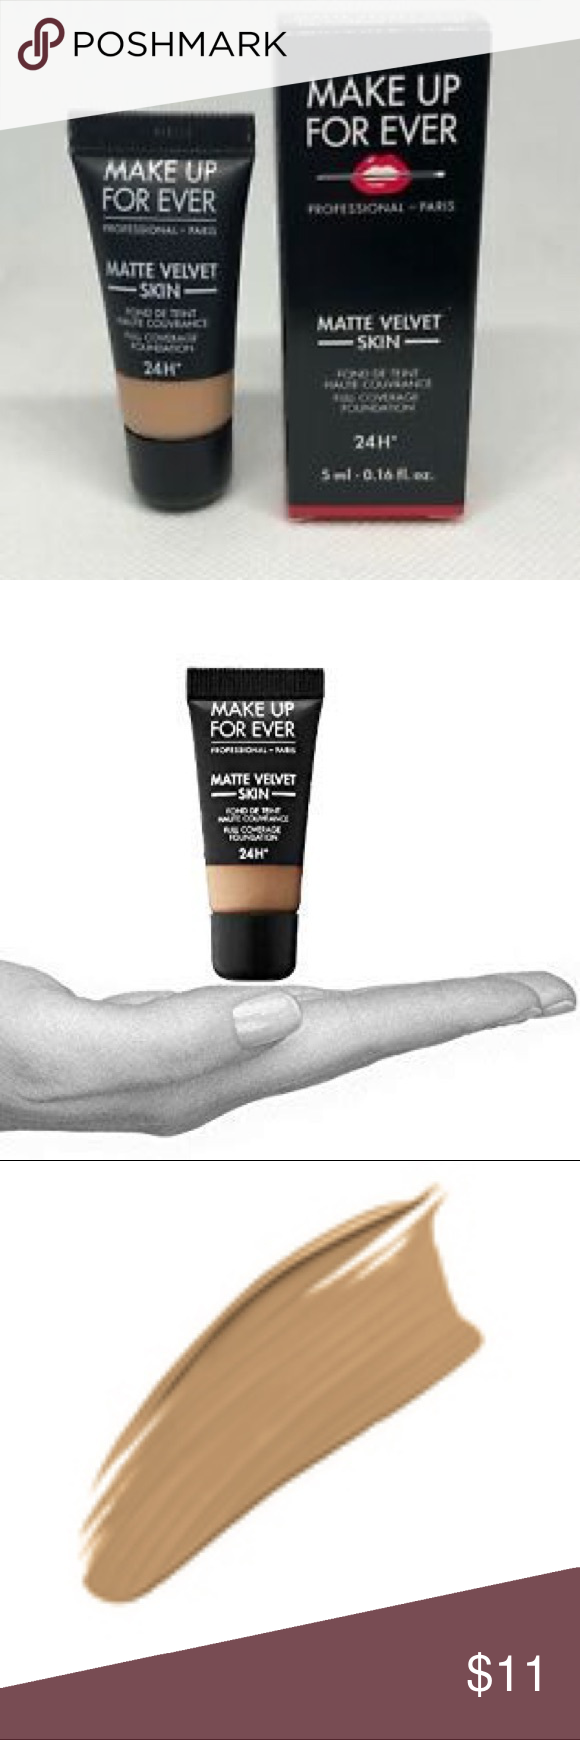 Make Up For Ever Matte Velvet Foundation Almond Make Up